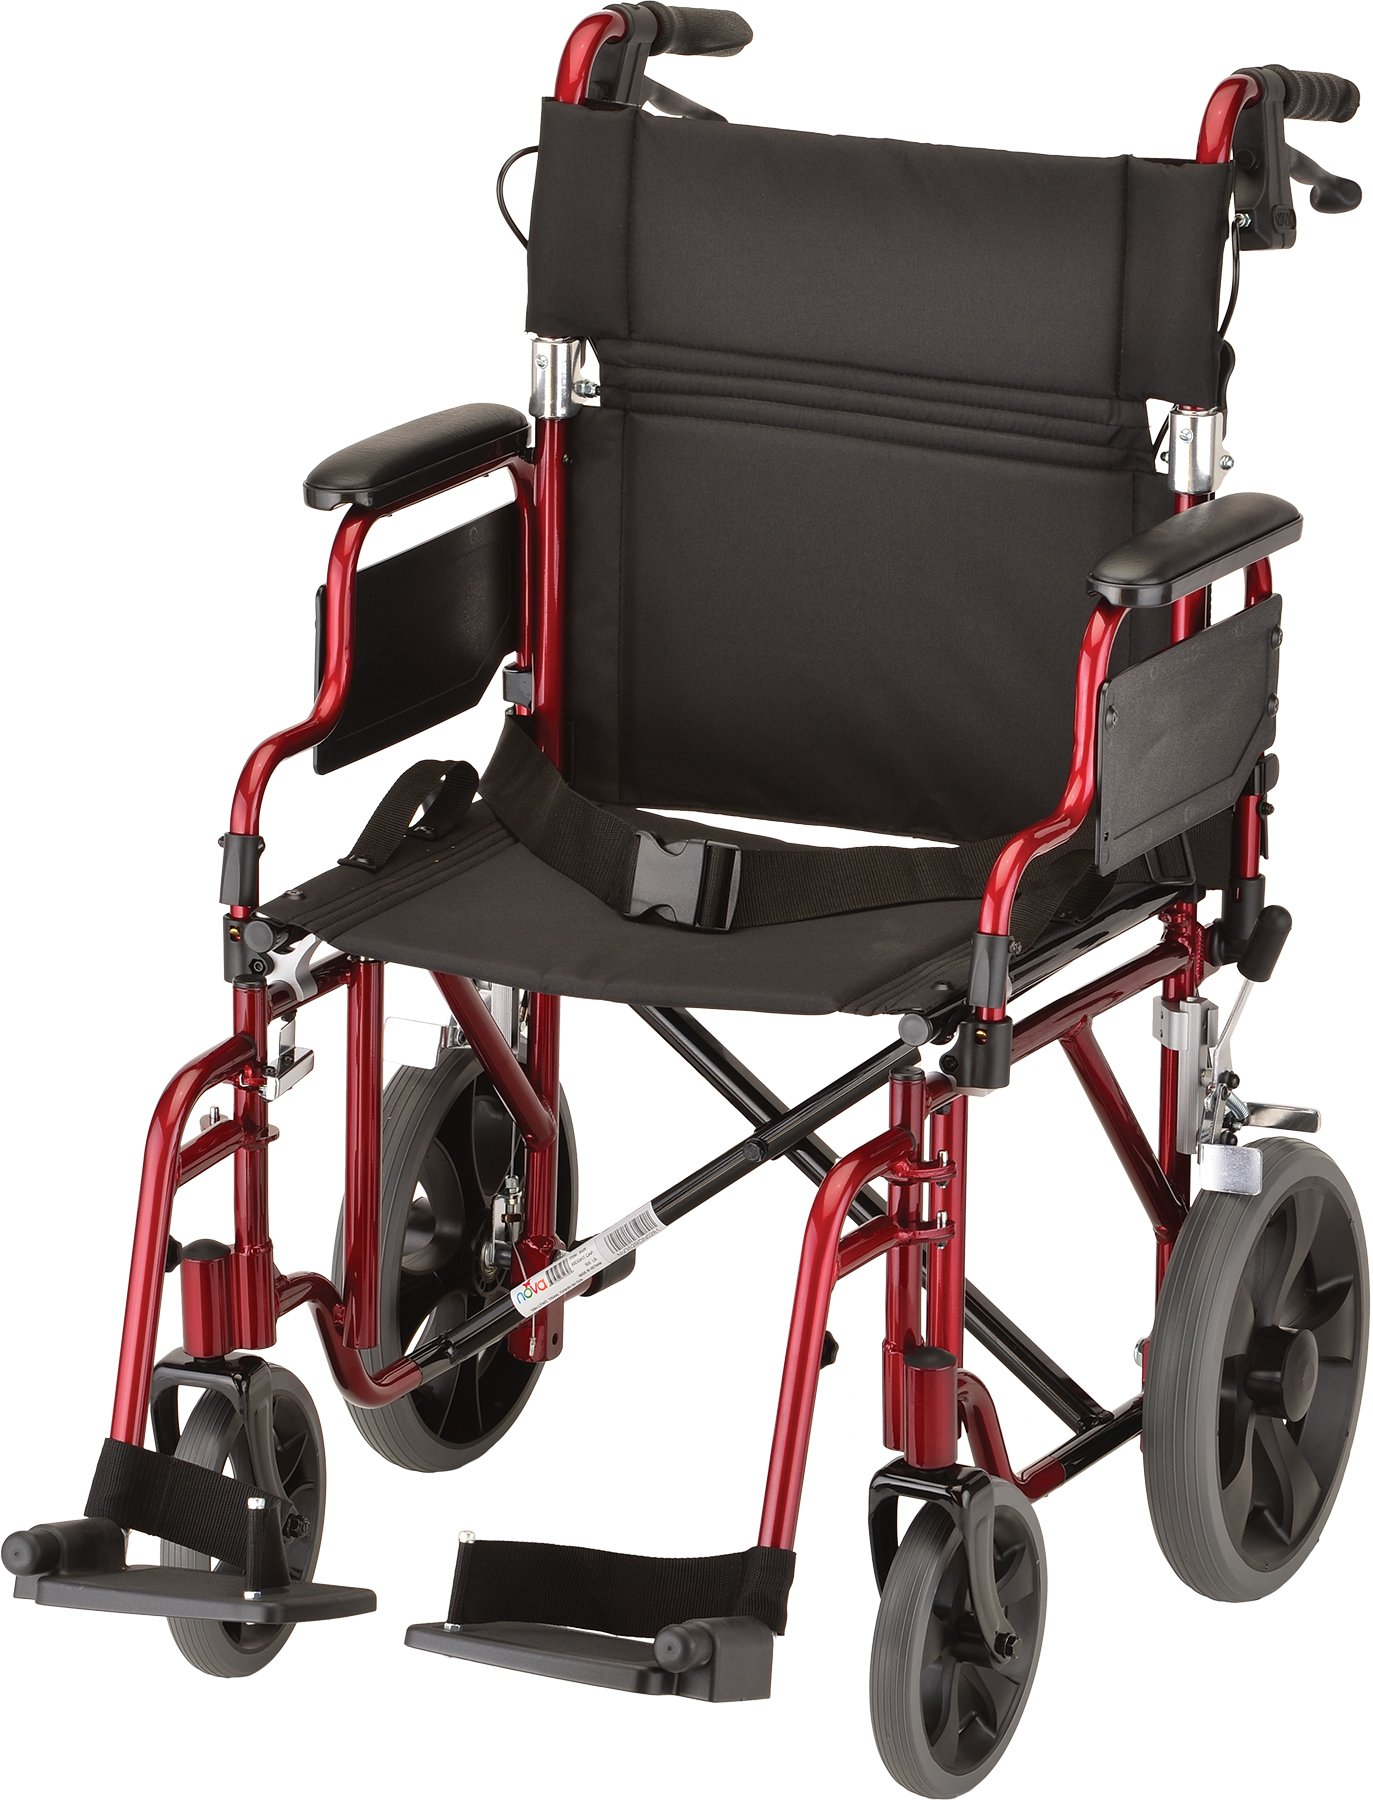 NOVA Lightweight Transport Chair with Locking Hand Brakes, 12'' Rear Wheels, Removable & Flip Up Arms for Easy Transfer, Anti-Tippers Included, Red by NOVA Medical Products